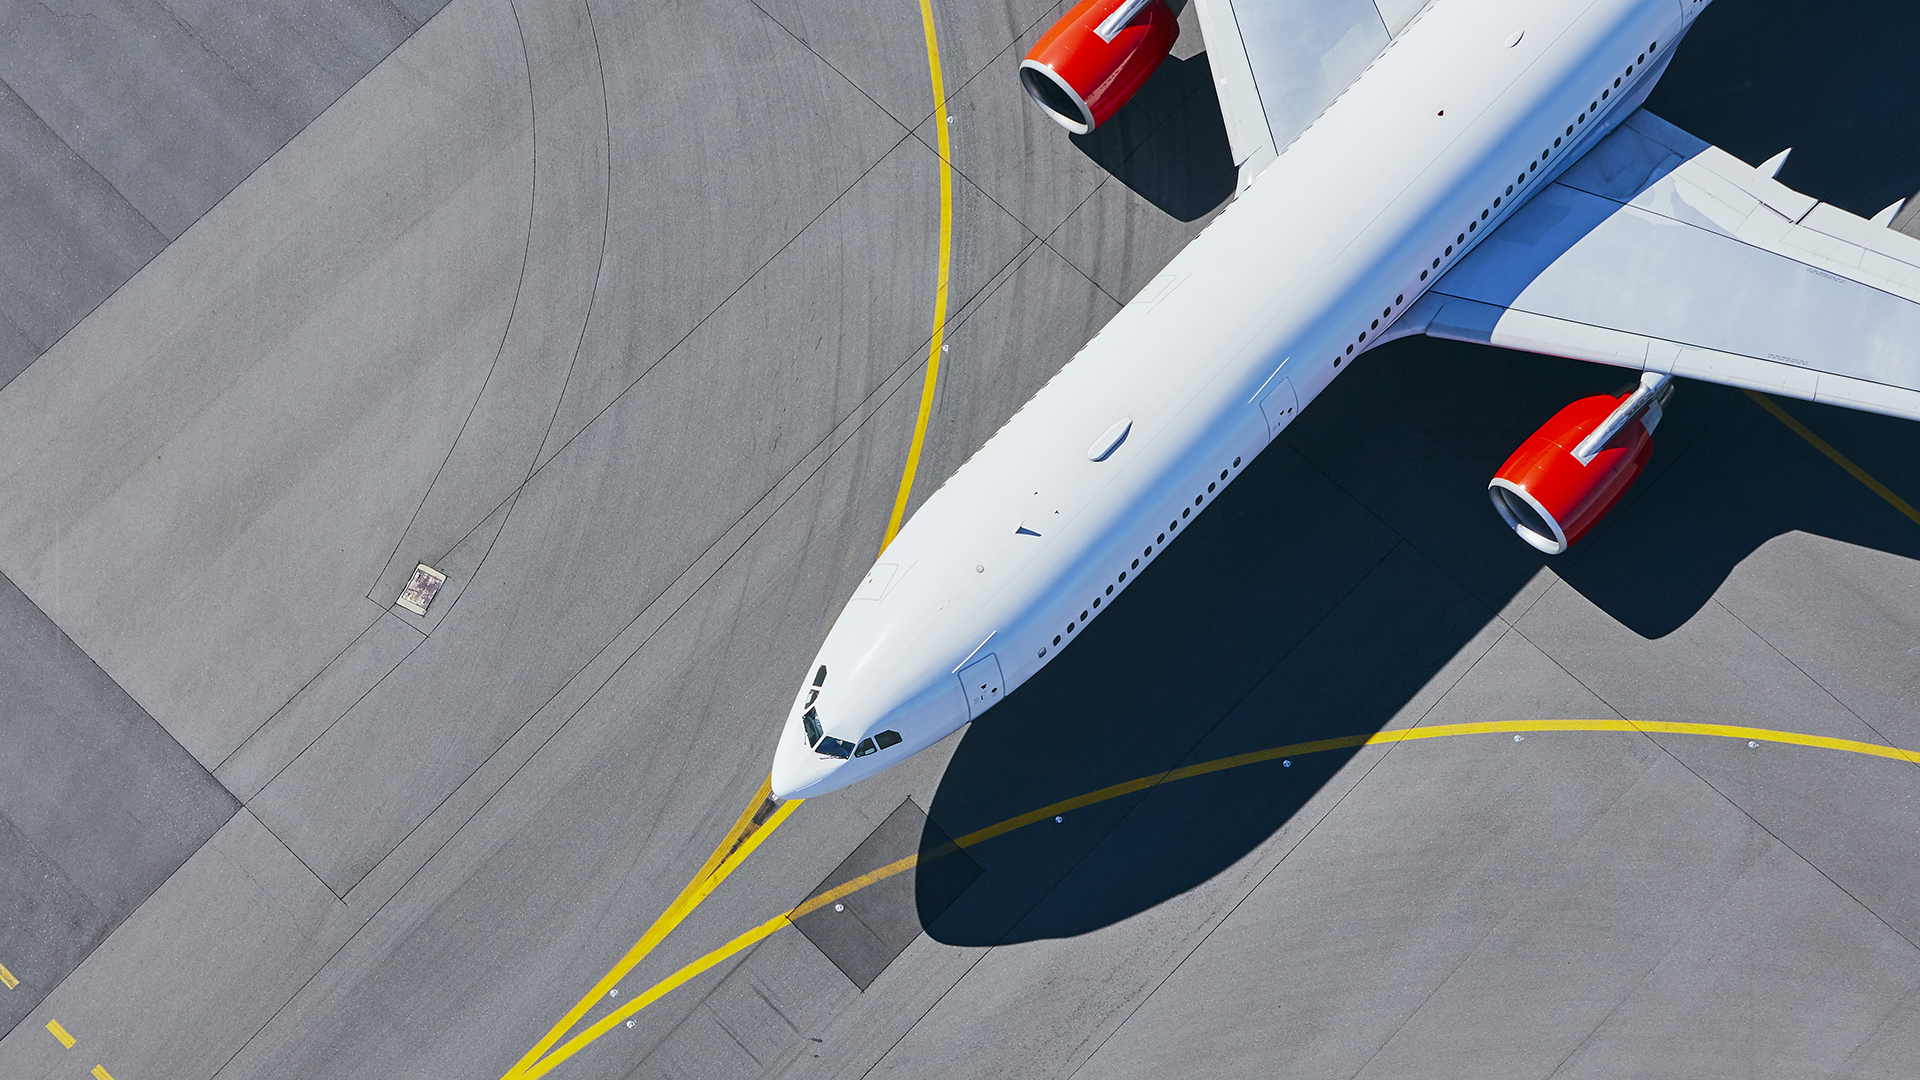 The EU's Green Deal proposals for aviation and the UK Decarbonising Transport Plan: Initial thoughts